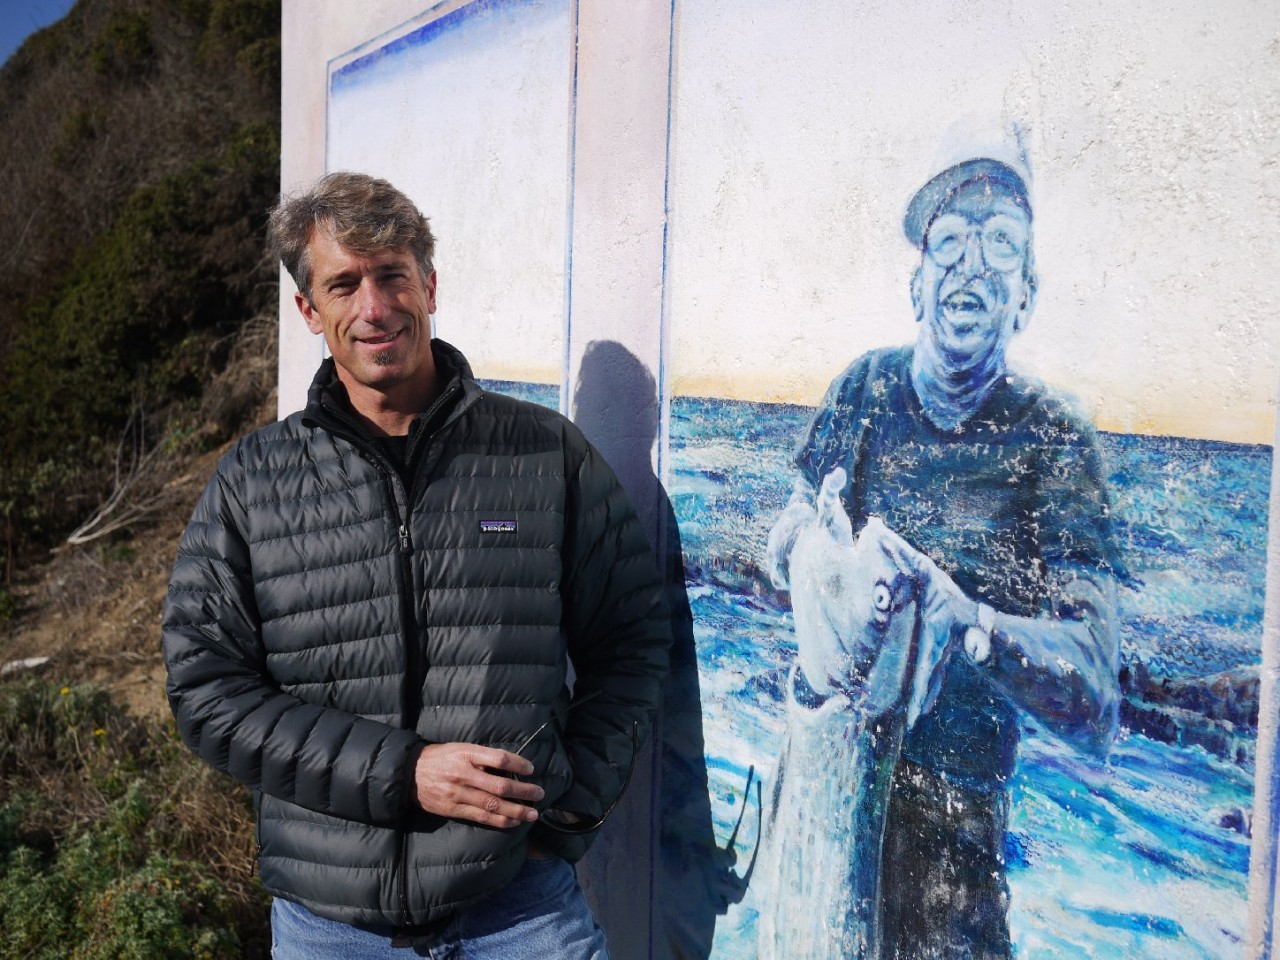 Mike Wallace used to bring his high school surf team to practice at Martins Beach. Here, he stands next to a mural depicting the beach's former owners. (Amy Standen/KQED)